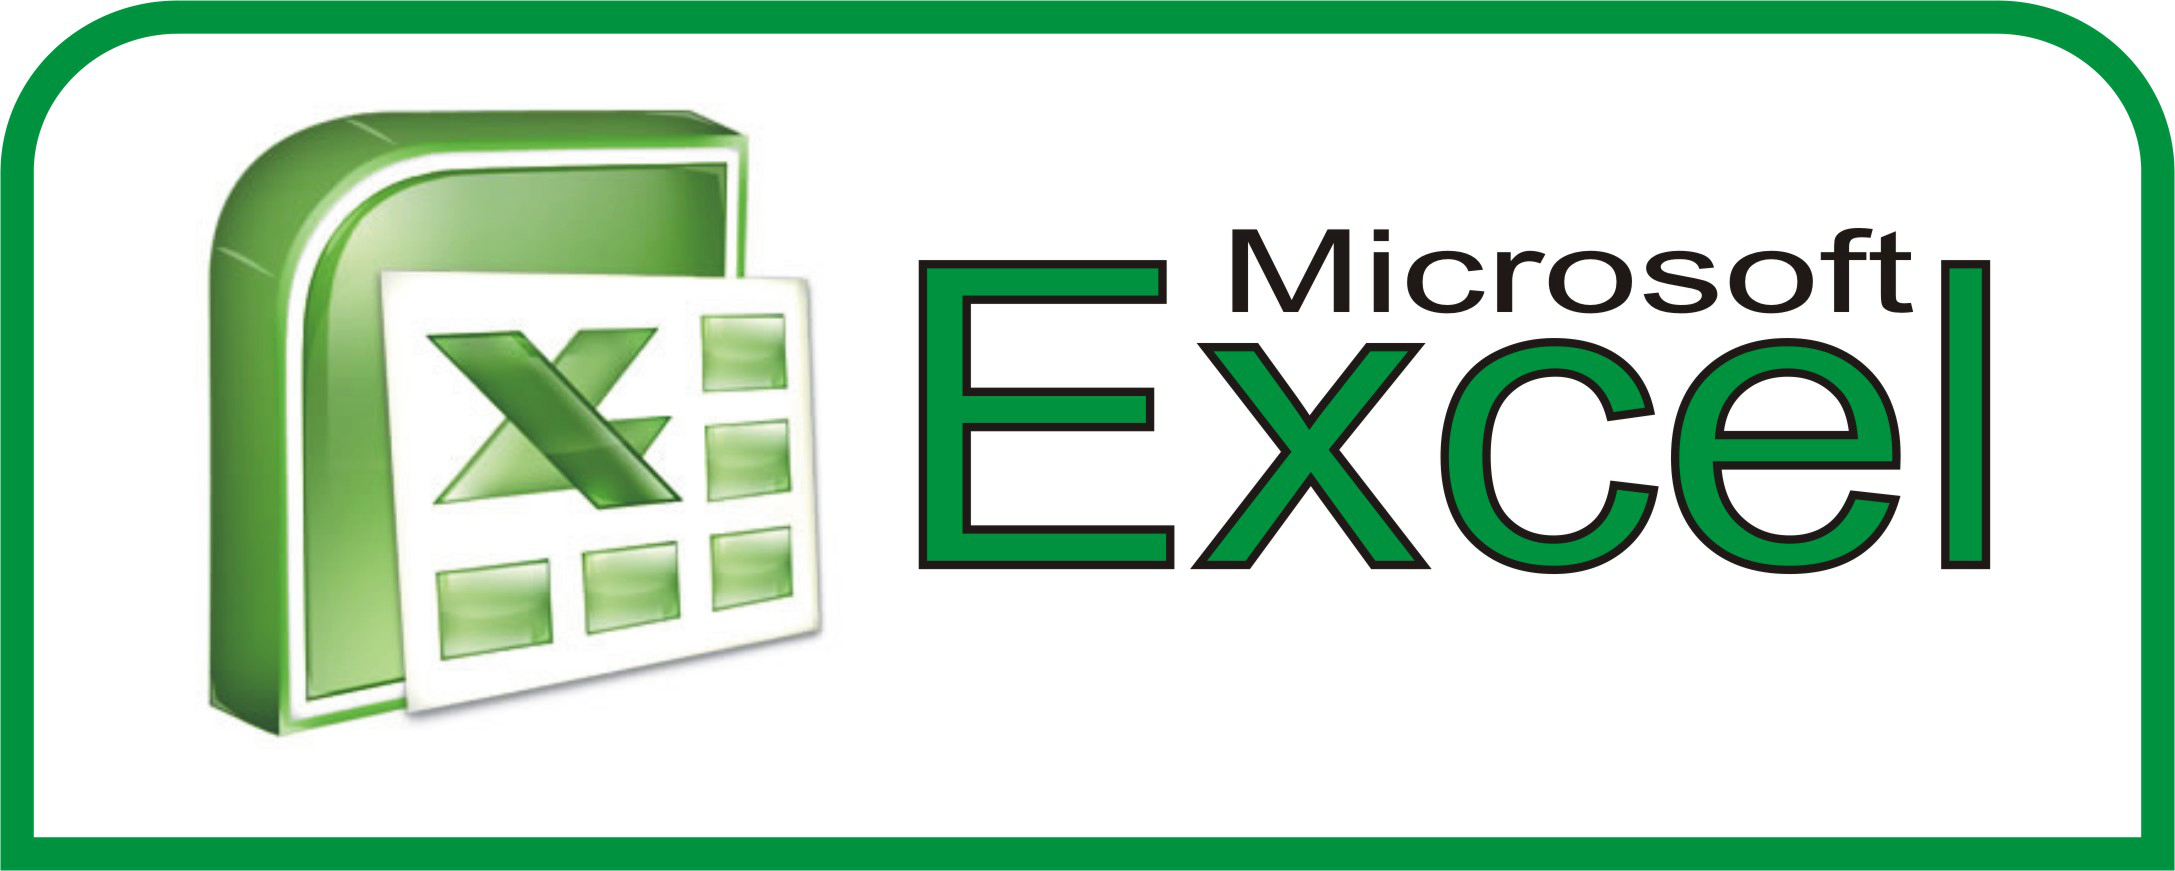 Ediblewildsus  Wonderful  Excel Shortcuts You Probably Didnt Know About  Techdissected With Exquisite How To Graph On Microsoft Excel Besides Unhide All Rows Excel Furthermore Top Excel Tips With Comely Expense Calculator Excel Also Excel Vba Cells Range In Addition Autosum Excel  And Visual Basic Open Excel File As Well As Recovered Excel Files Additionally Ms Project To Excel From Techdissectedcom With Ediblewildsus  Exquisite  Excel Shortcuts You Probably Didnt Know About  Techdissected With Comely How To Graph On Microsoft Excel Besides Unhide All Rows Excel Furthermore Top Excel Tips And Wonderful Expense Calculator Excel Also Excel Vba Cells Range In Addition Autosum Excel  From Techdissectedcom